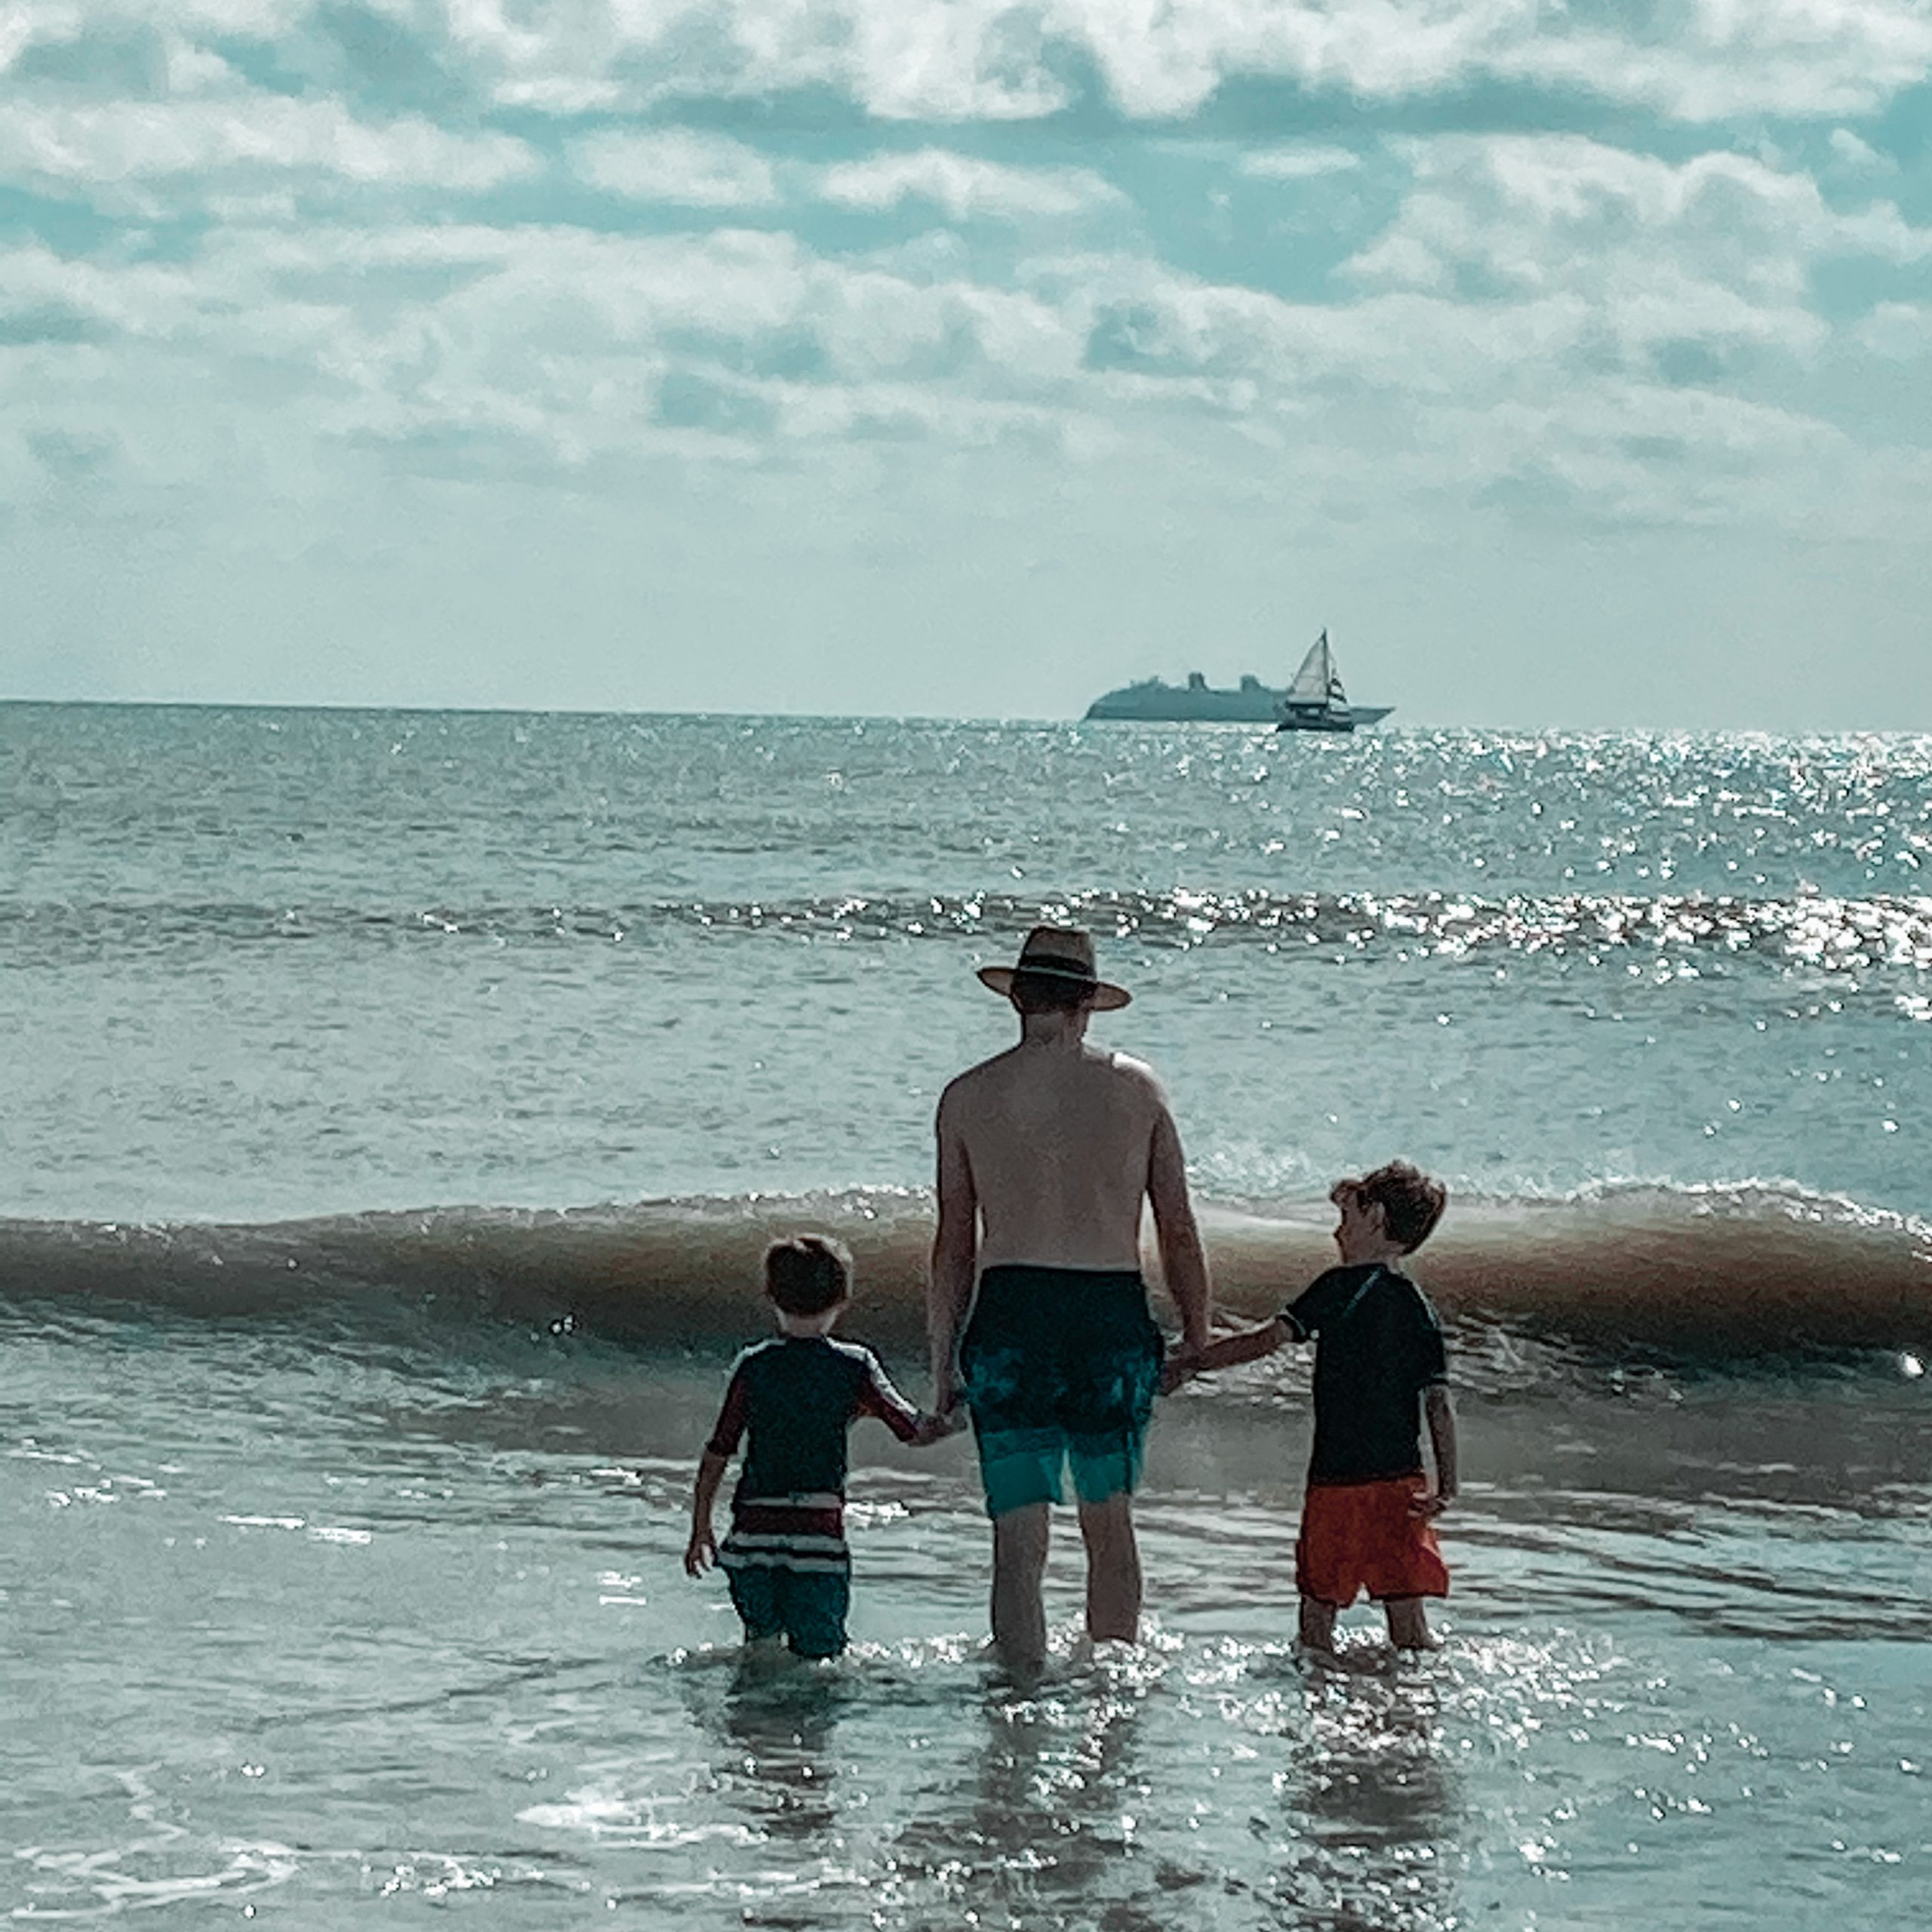 Father and children looking out into the ocean